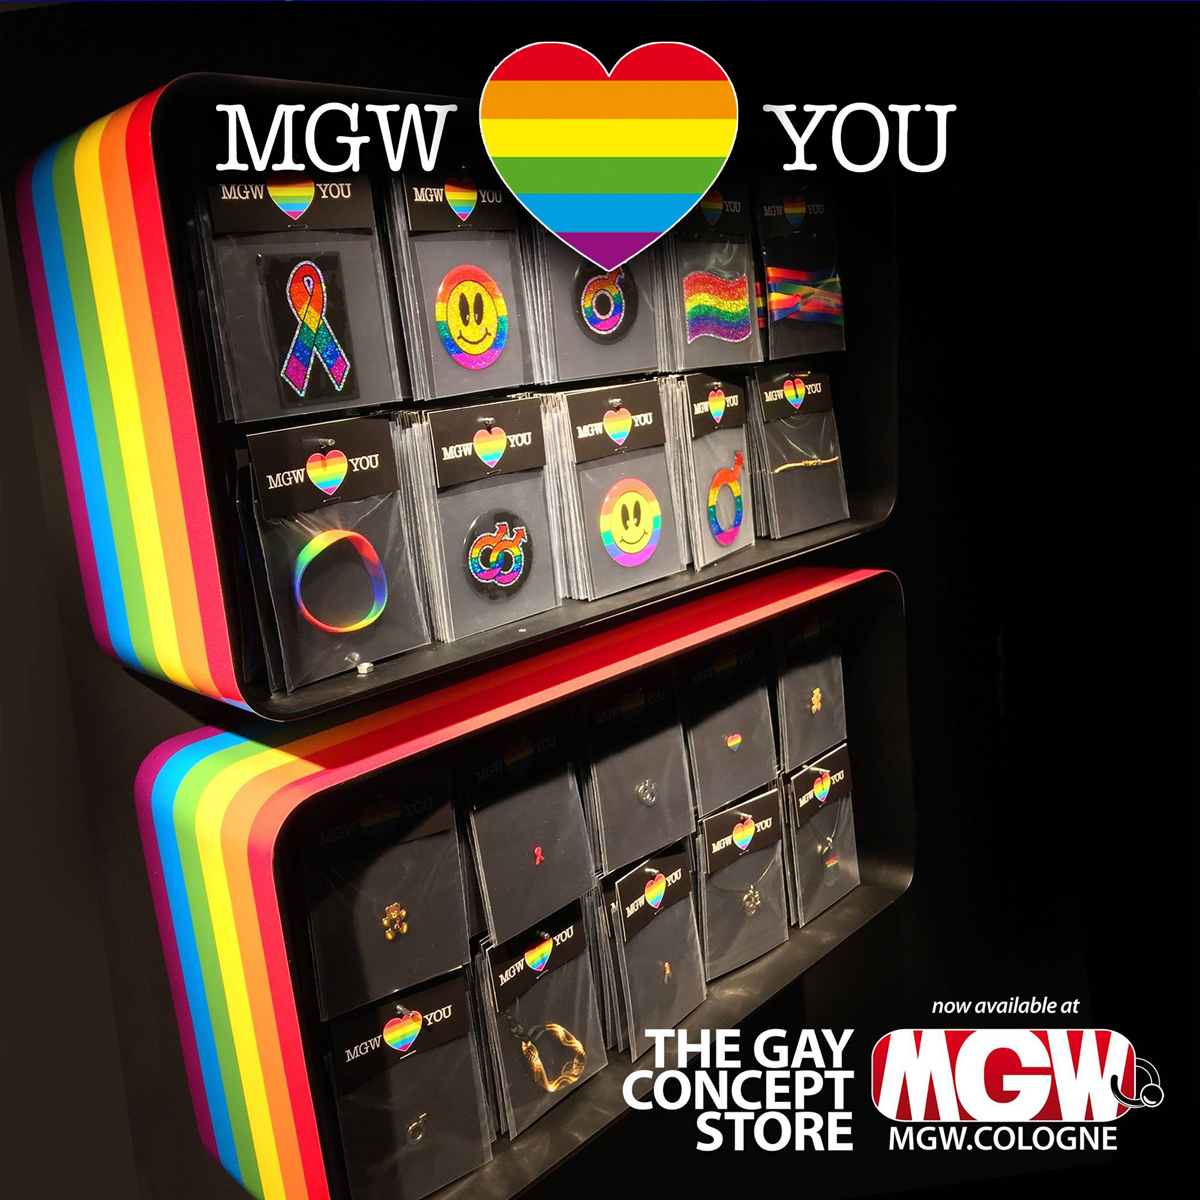 , +++ MGW COLOGNE LOVES YOU! +++